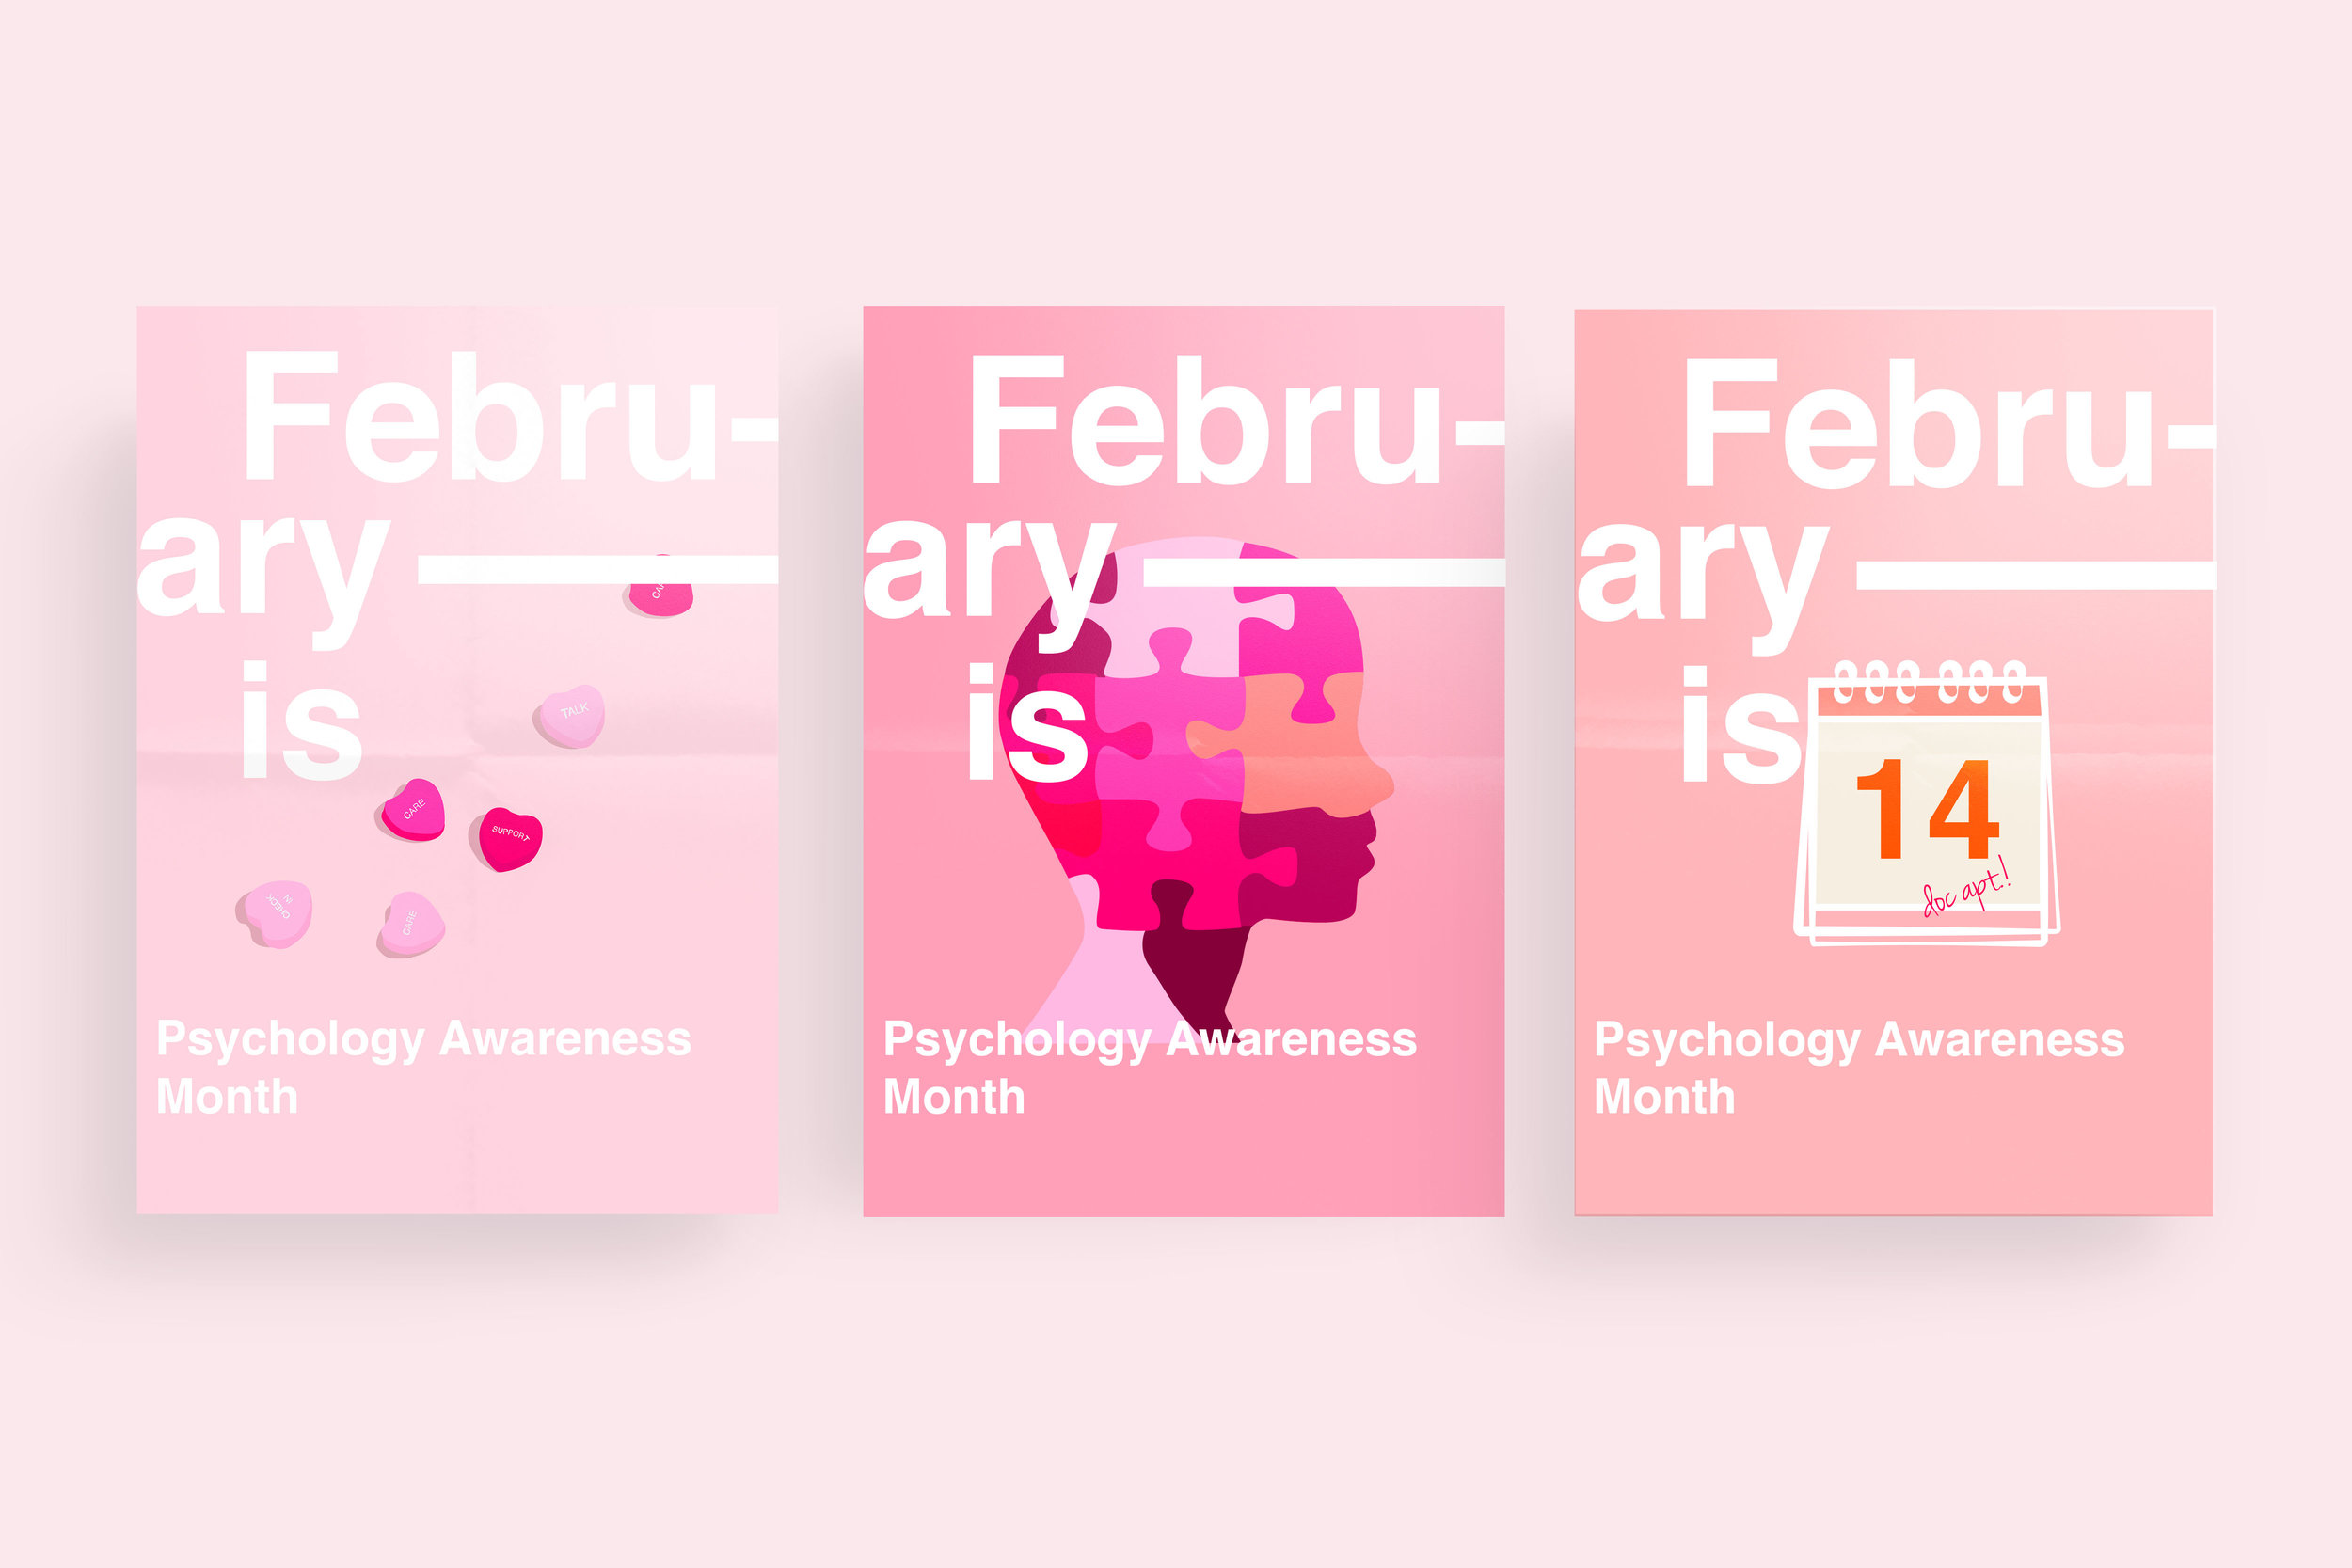 February Psychology Awareness Poster.jpg